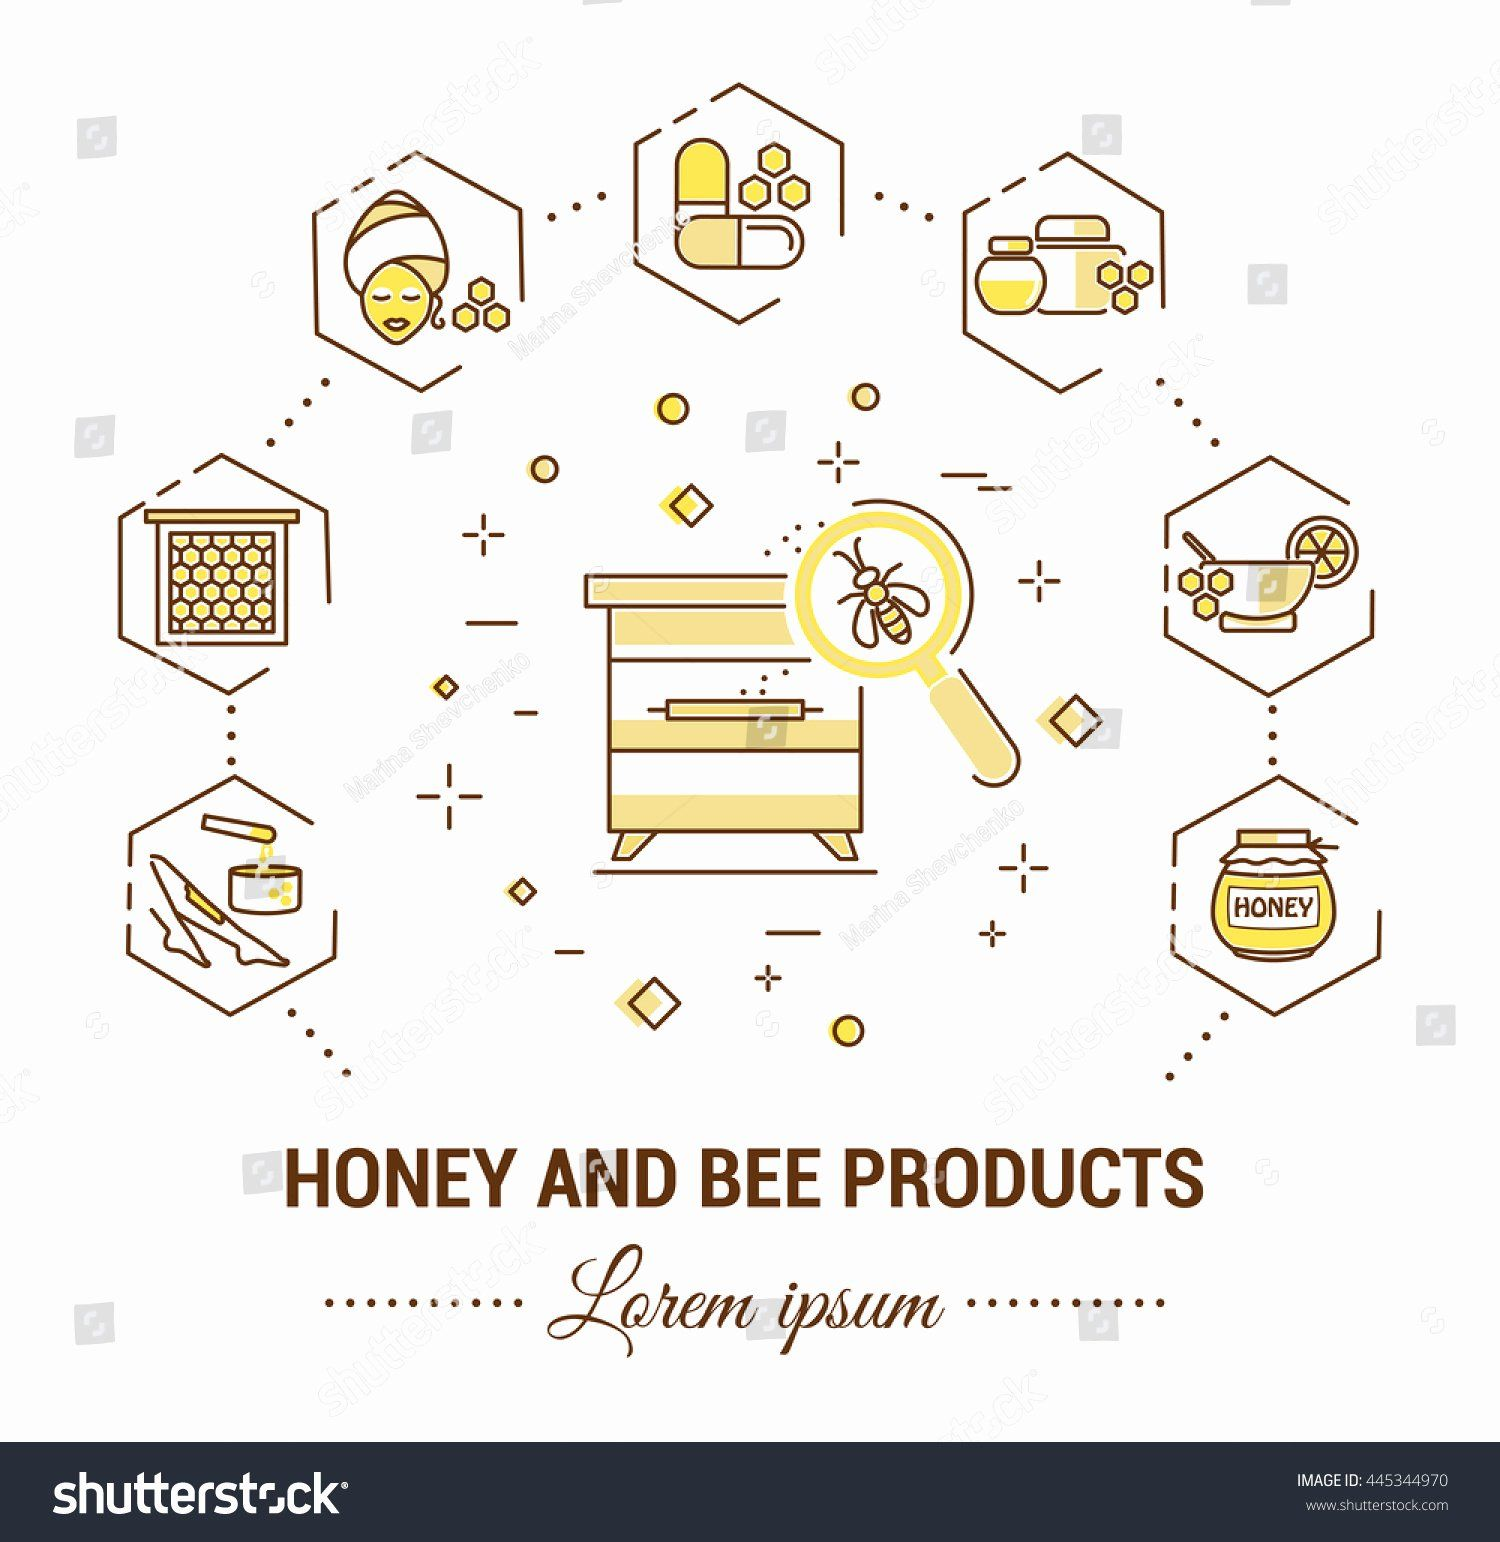 Product Line Card Template New Flat Line Illustration Honey Bee Products Stock Vector Free Brochure Template Card Template Free Printable Card Templates